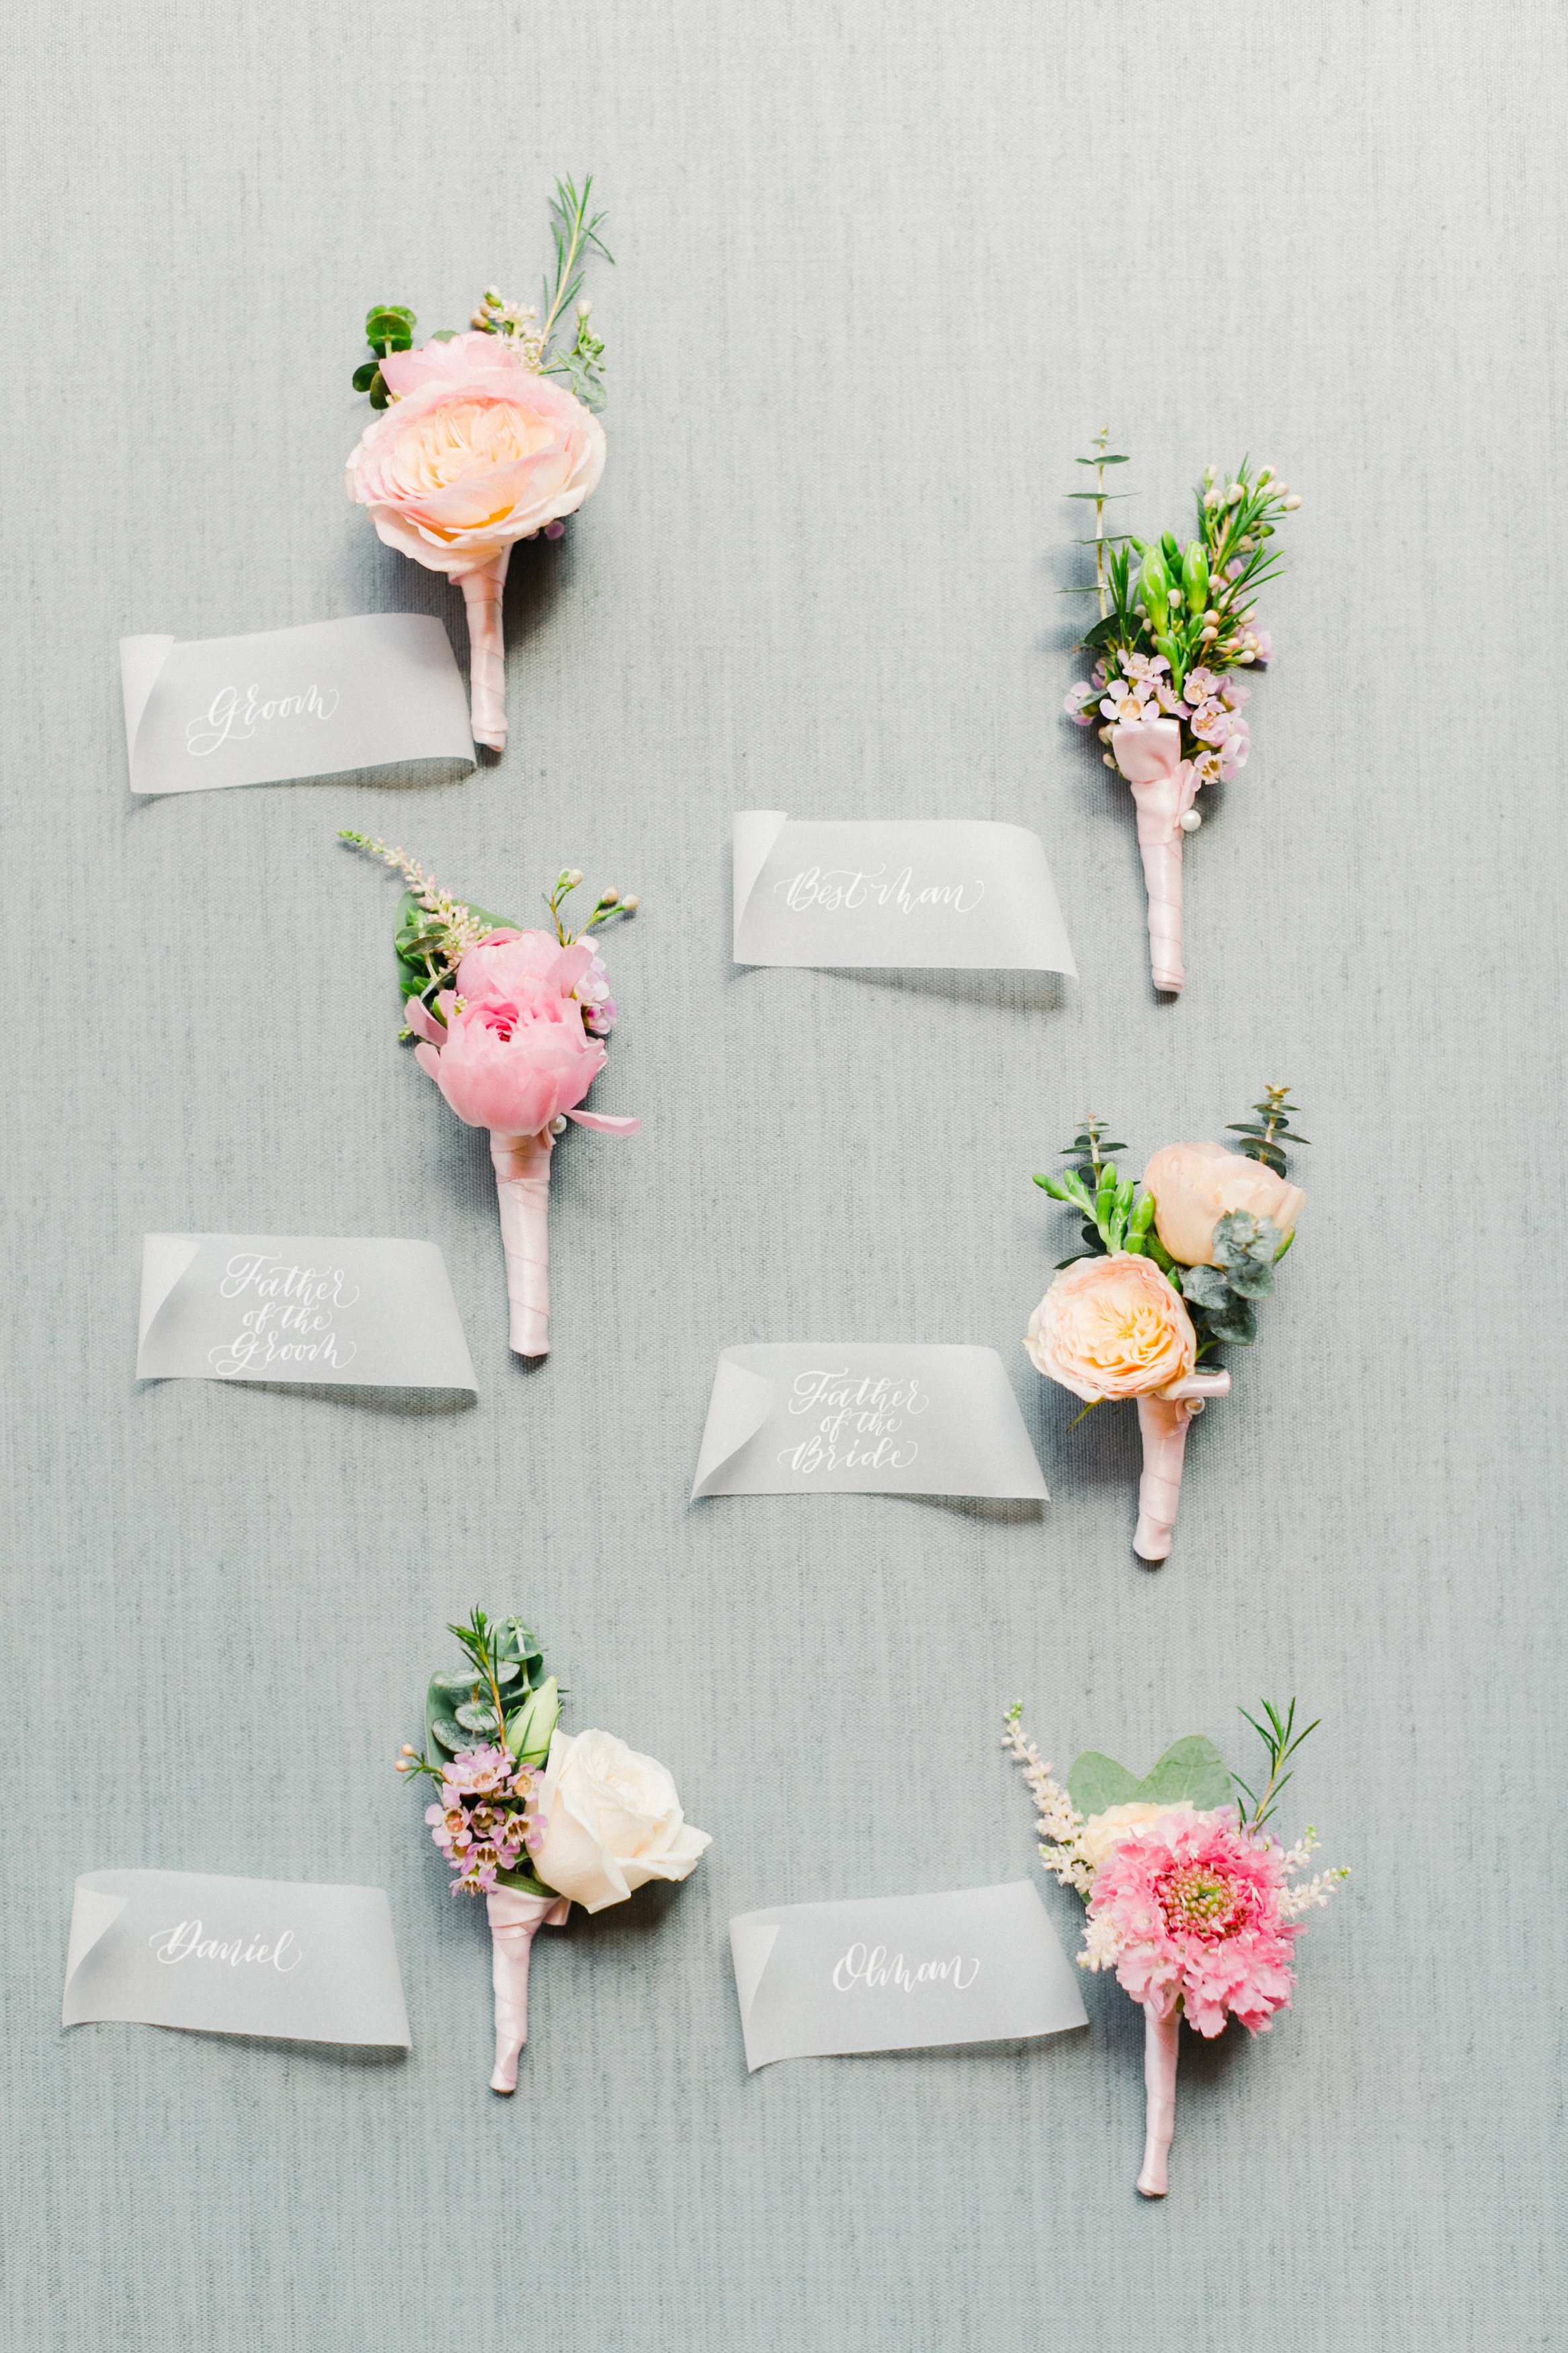 Yosemite wedding place cards calligraphy items by paperloveme2.jpg